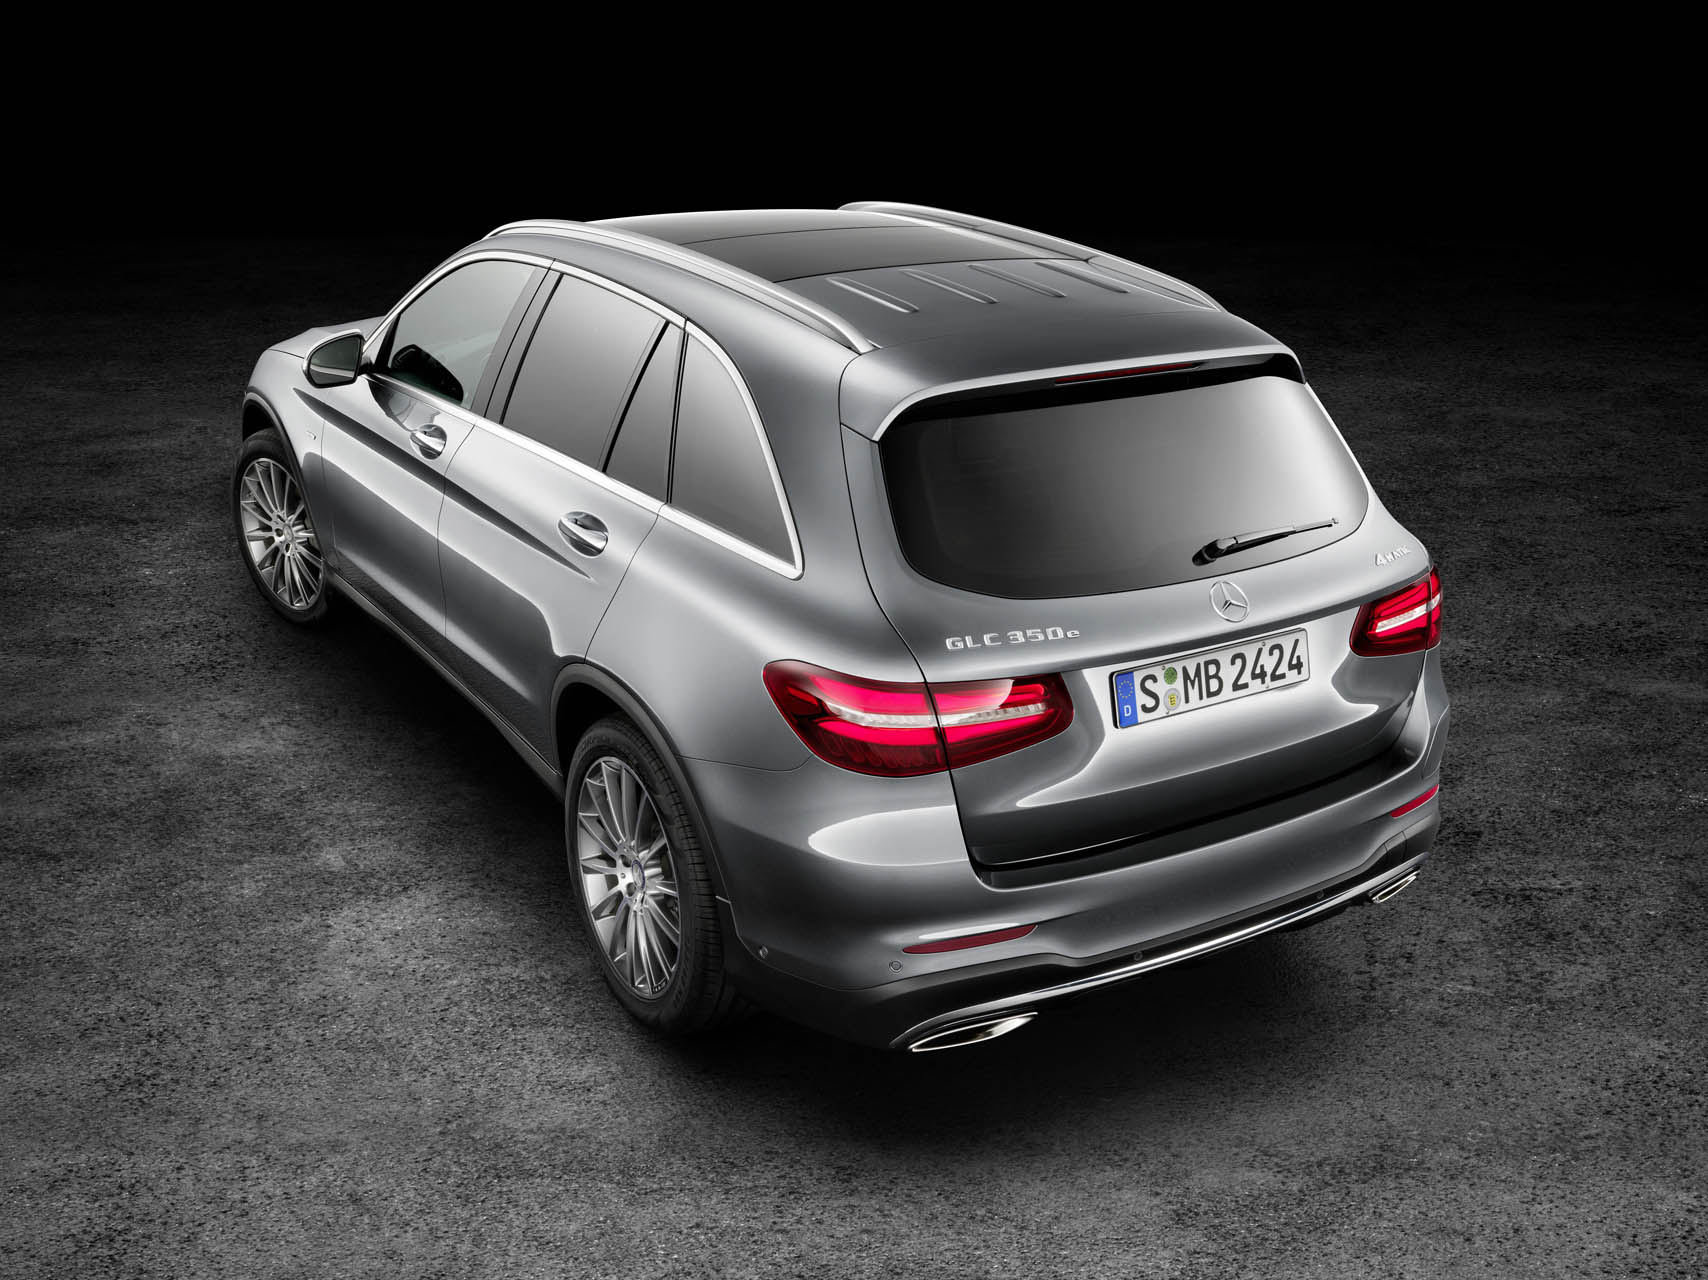 2016 mercedes benz glc 300 sheds boxy style gains new turbo engine news. Black Bedroom Furniture Sets. Home Design Ideas